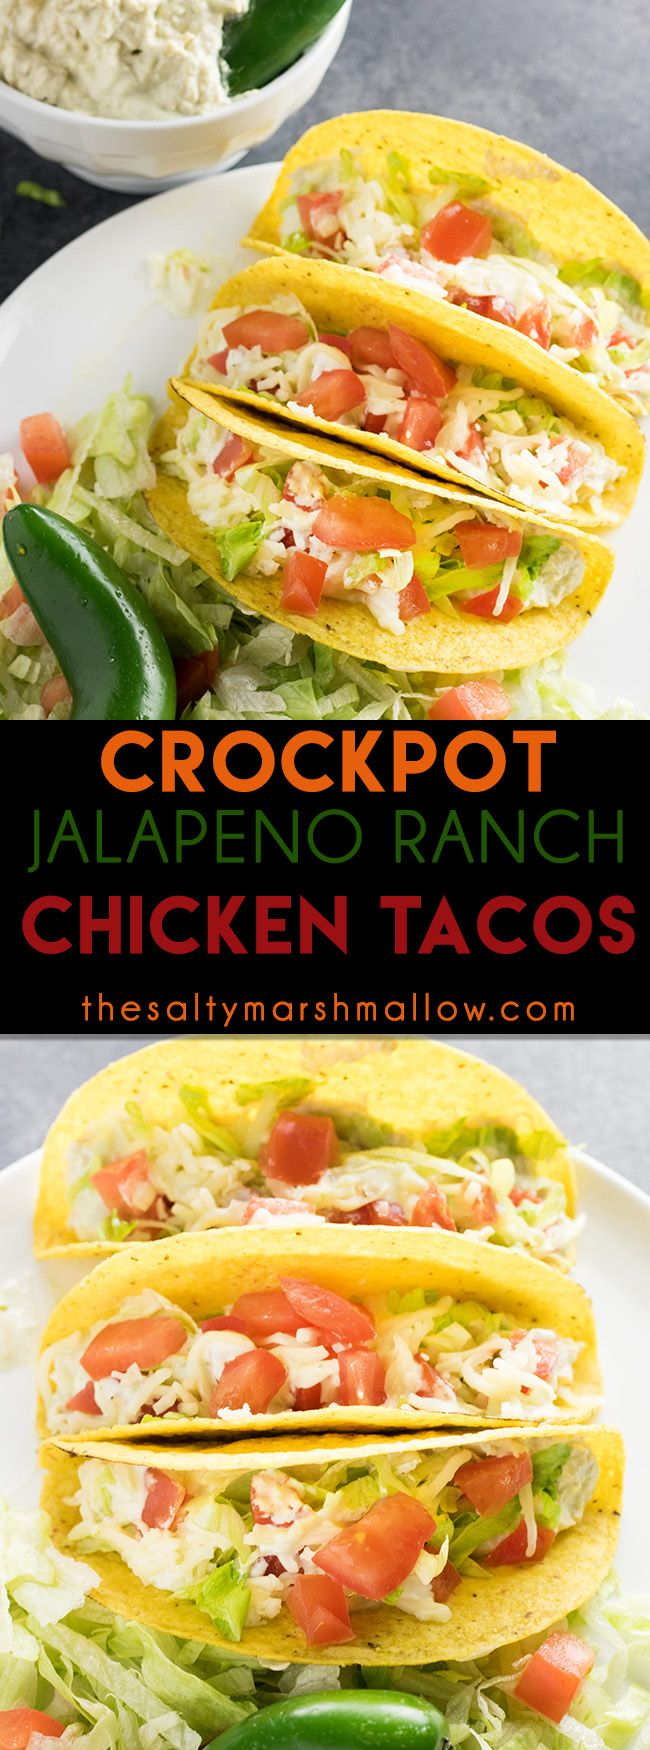 Crockpot Jalapeno Ranch Chicken Tacos: These crockpot shredded chicken tacos are super easy to make and perfectly spicy with creamy jalapeno ranch!